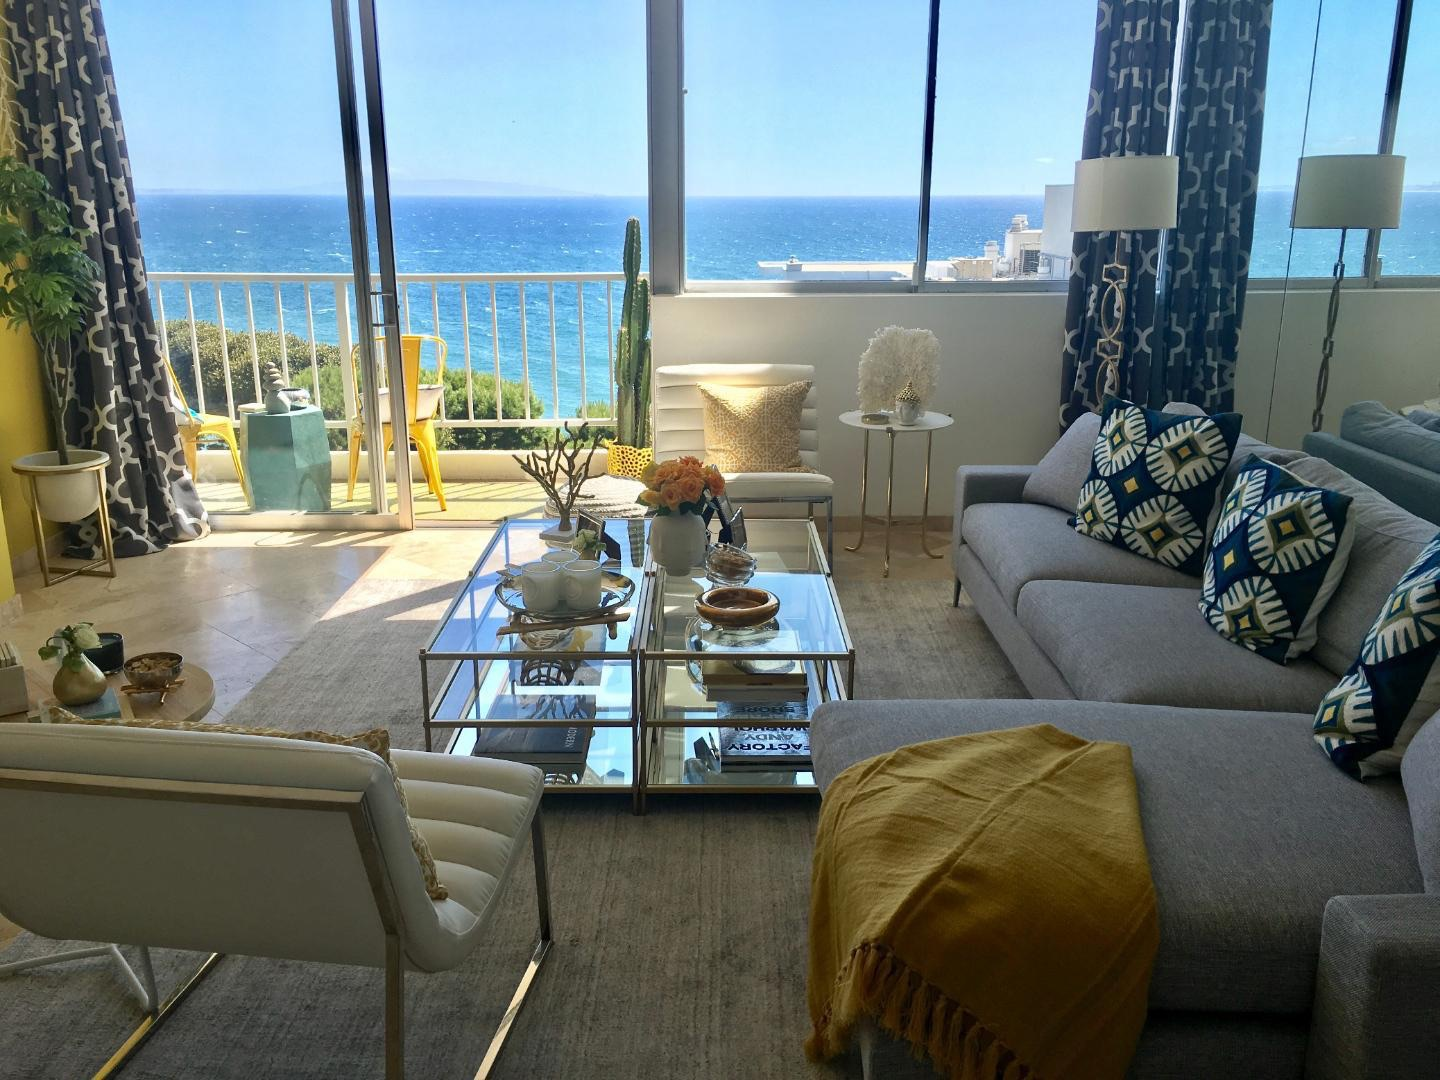 005.1 Furnished 17350 West Sunset Boulevard For Sale Lease The Malibu Life Team Luxury Real Estate.JPG